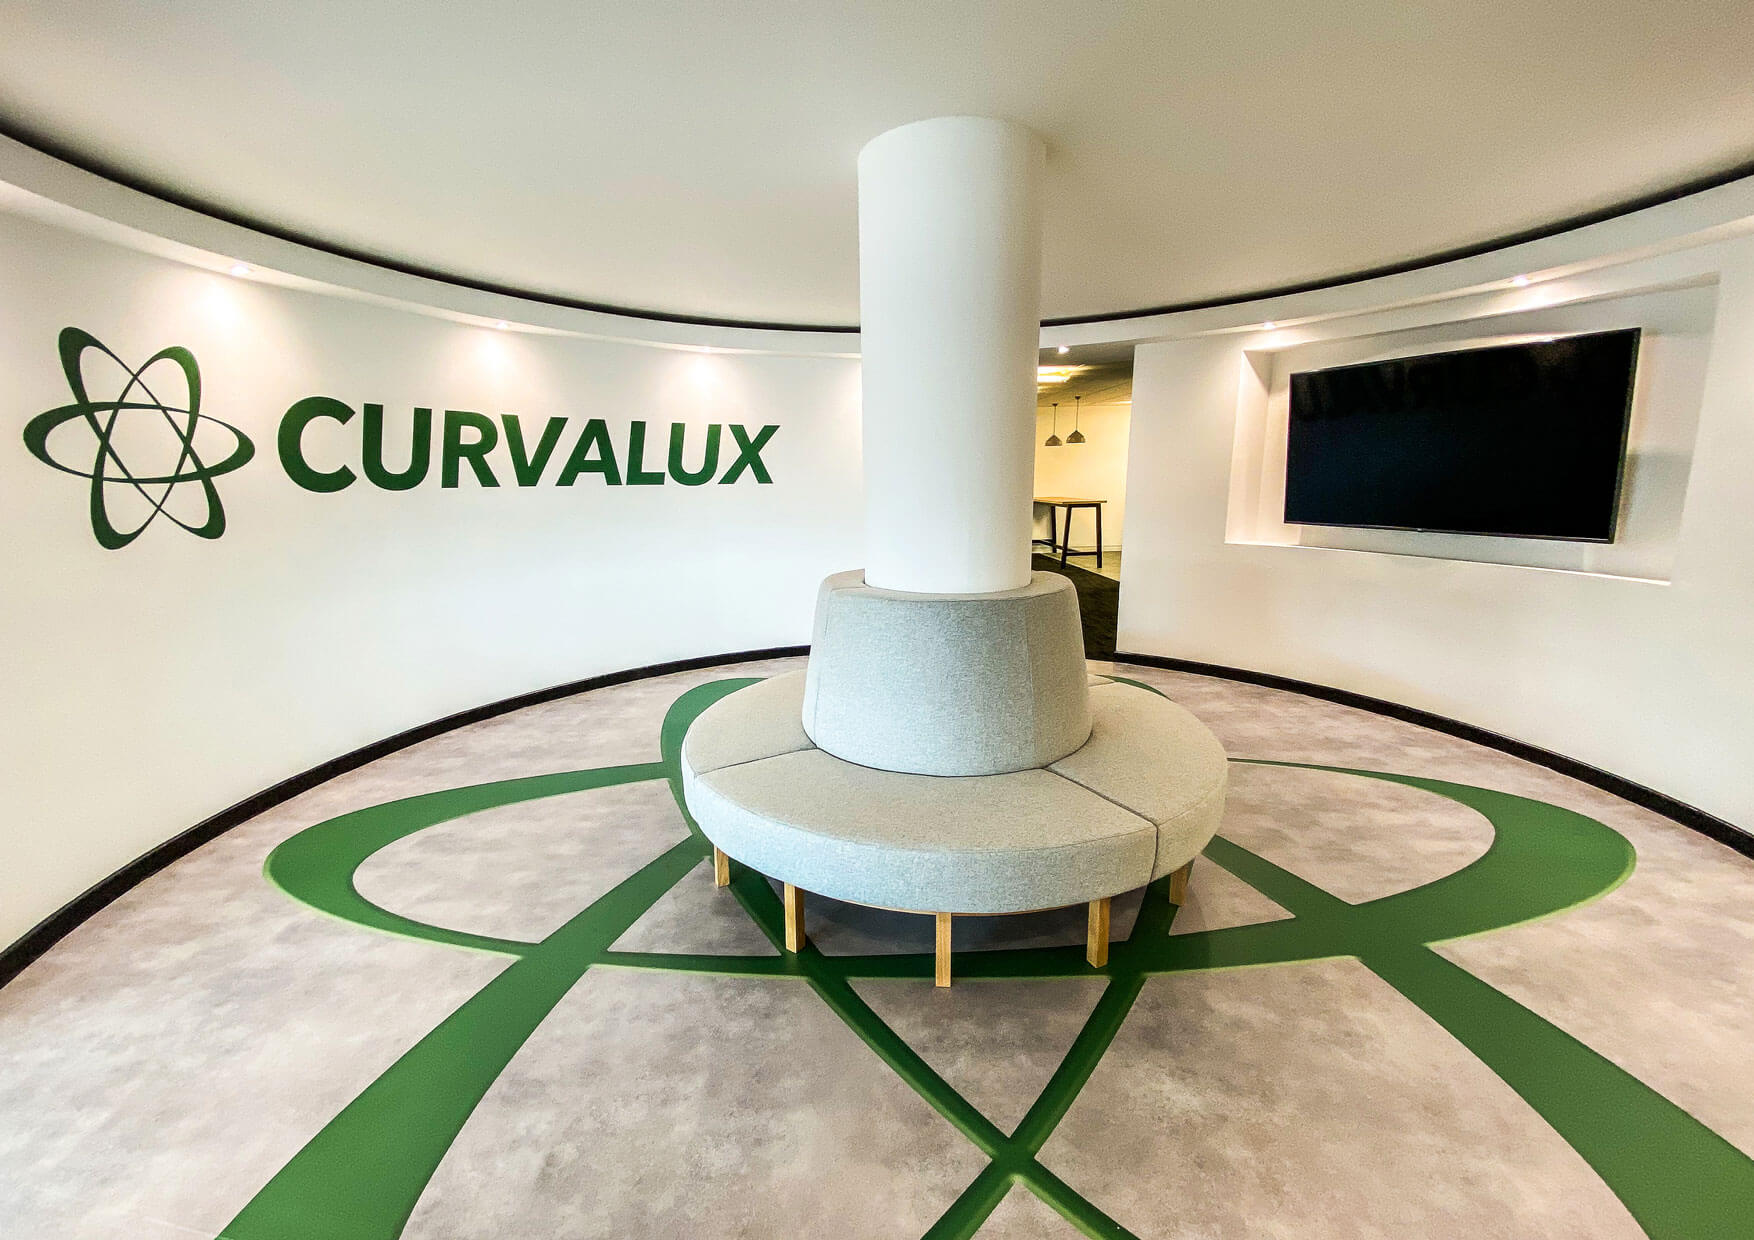 Curvalux Guest Welcome Area